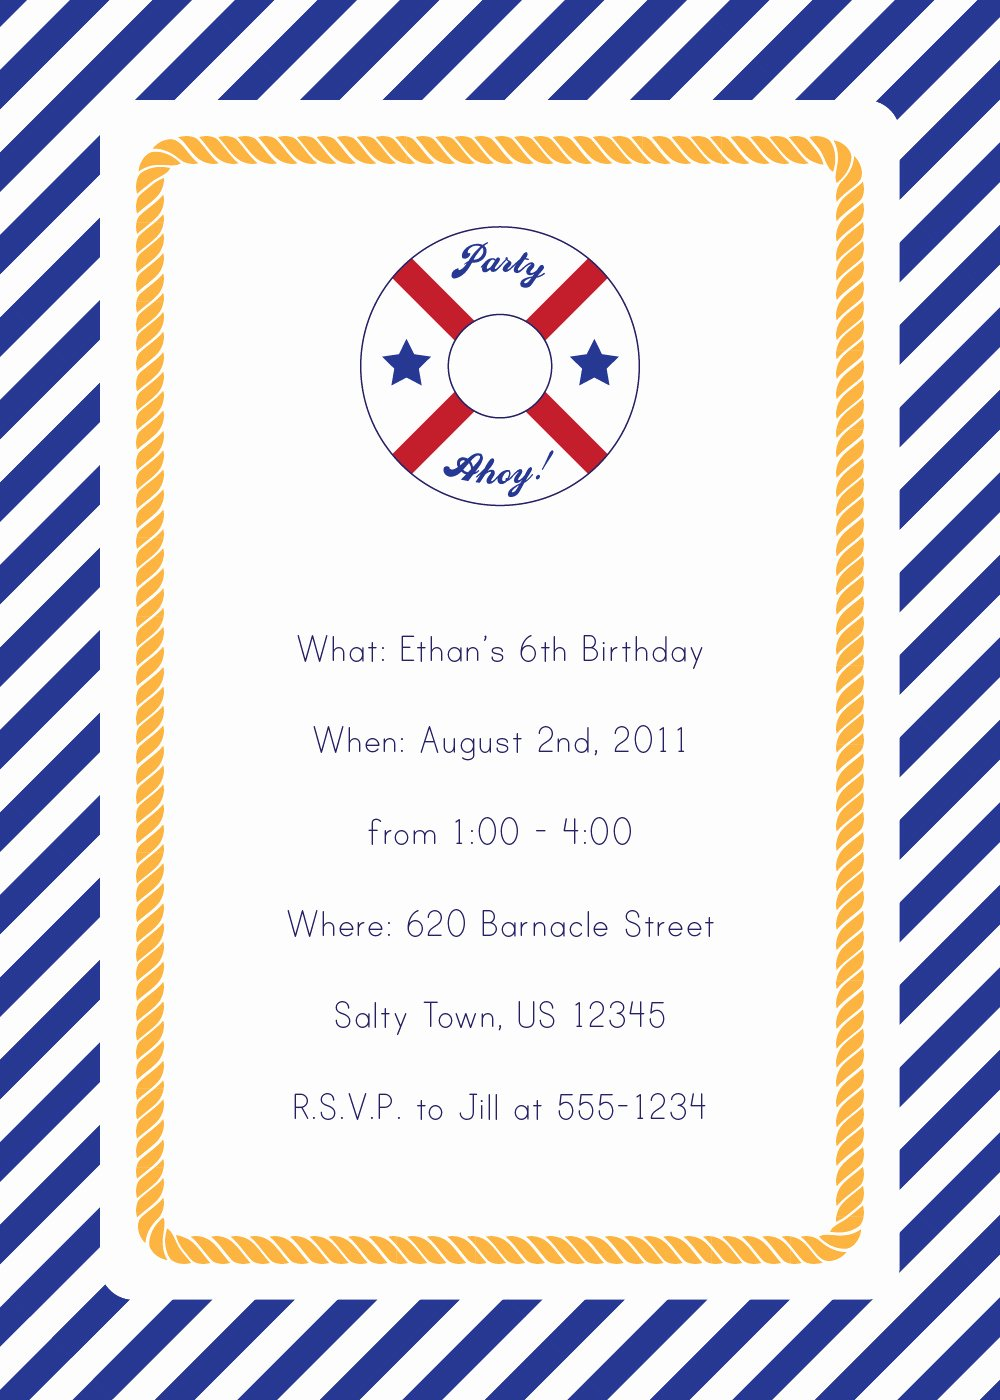 Nautical Invitation Template Free Awesome 40th Birthday Ideas Nautical Birthday Invitation Templates